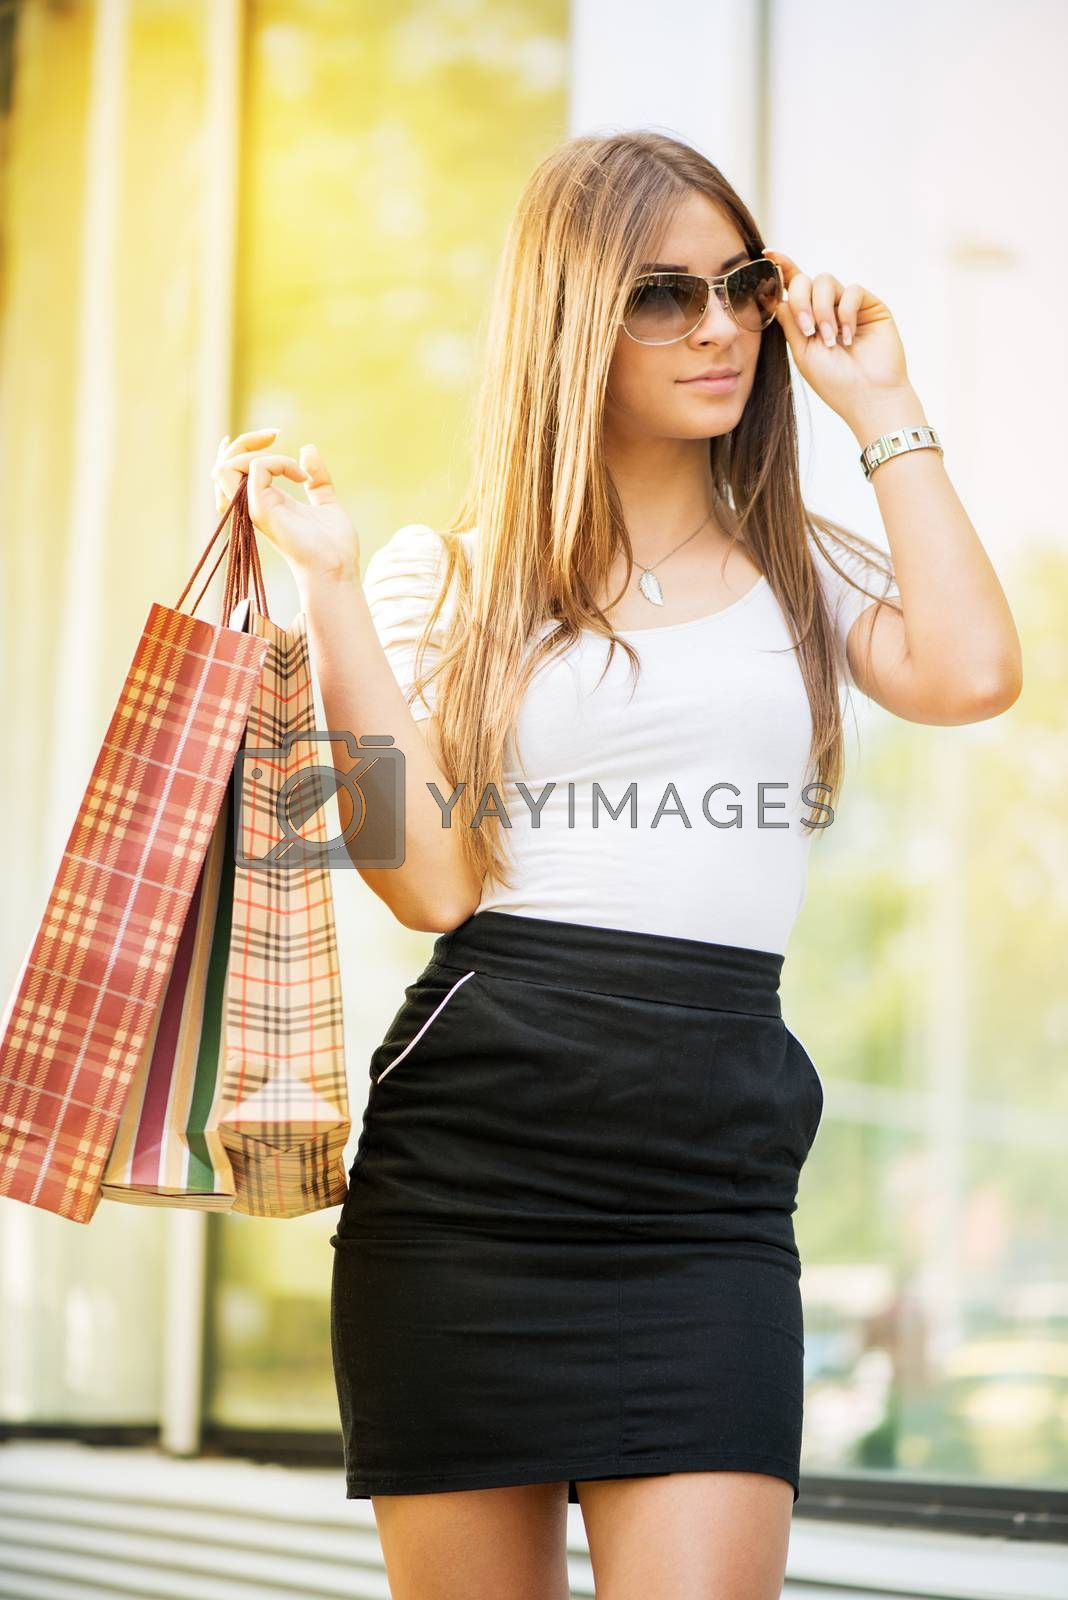 Beautiful young woman with the shopping bags walking in front of a shopping mall.